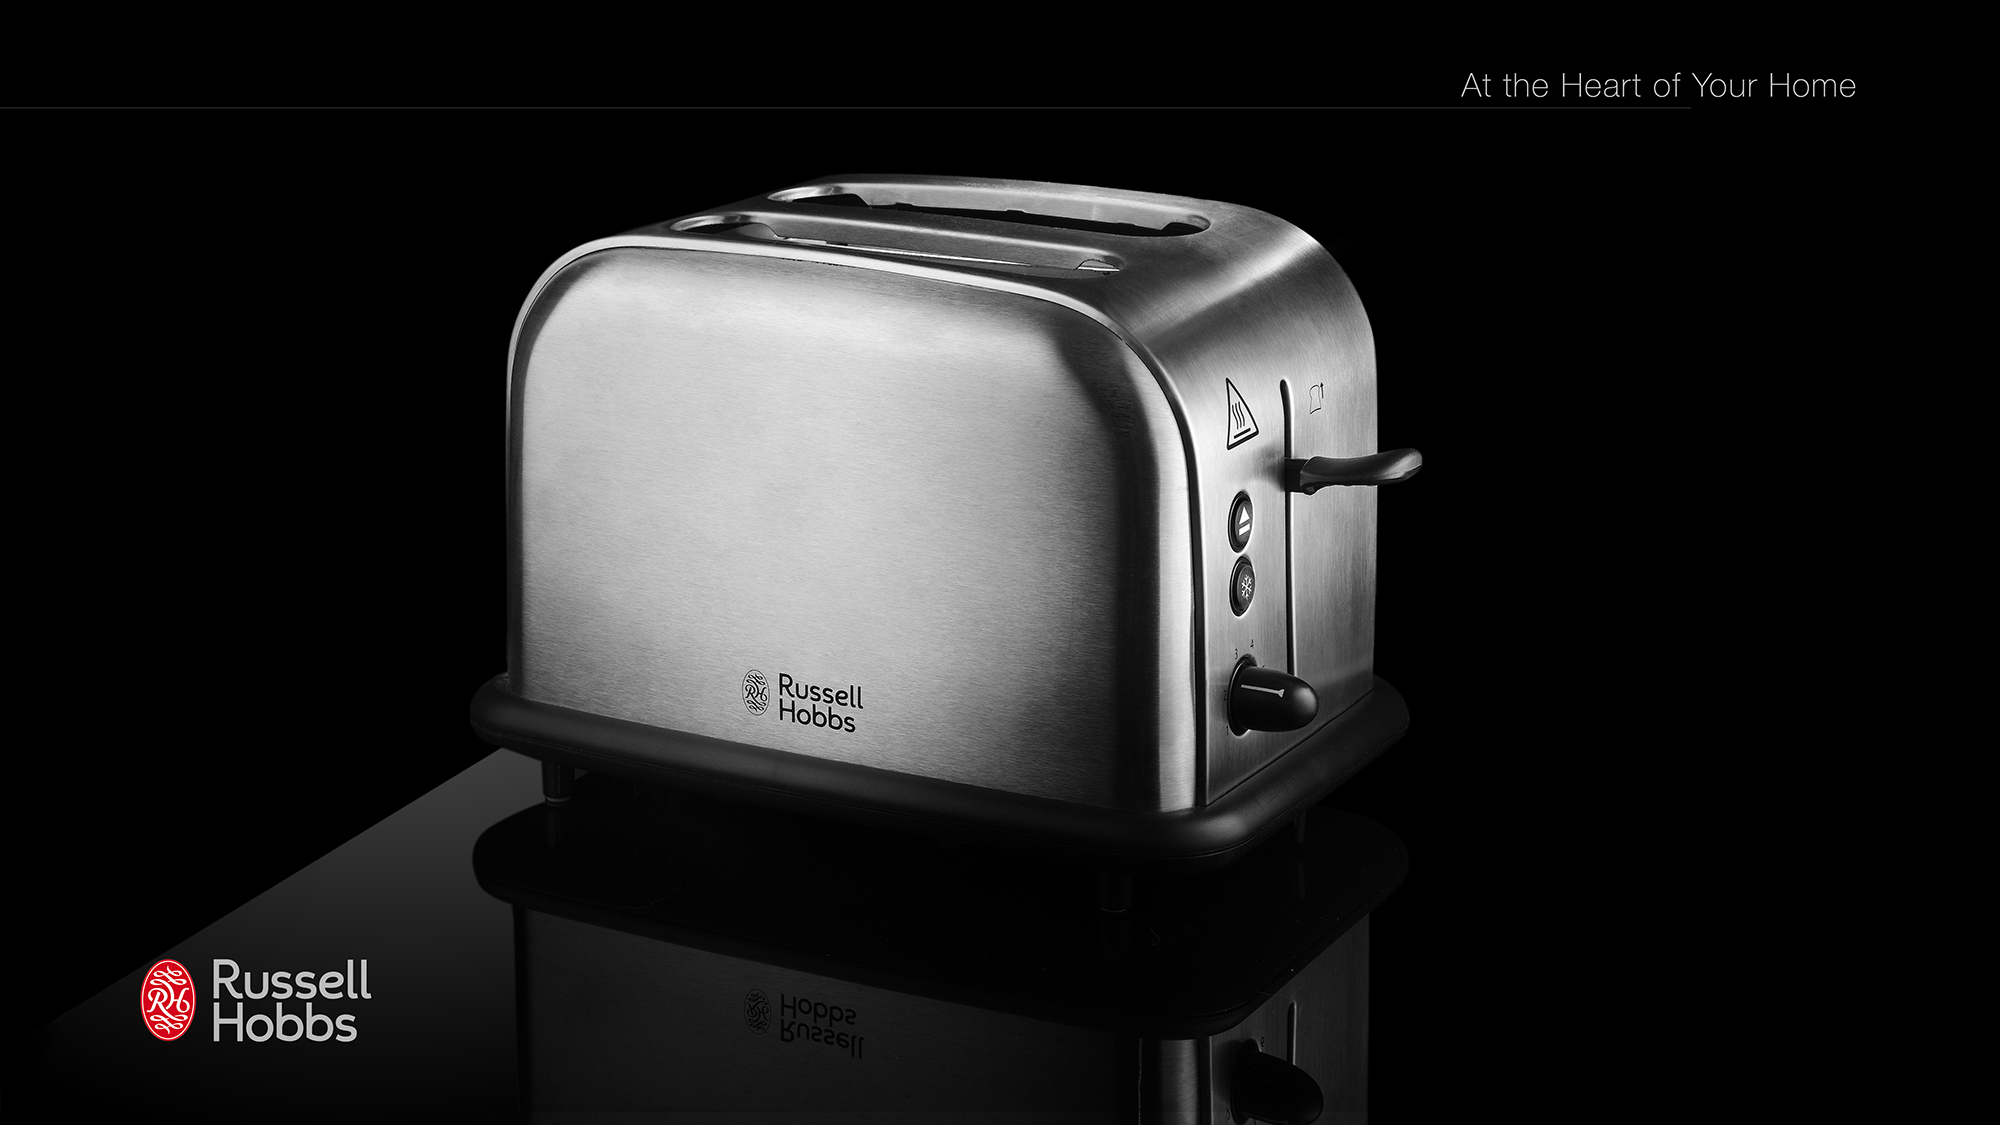 toster russell hobs 169.jpg